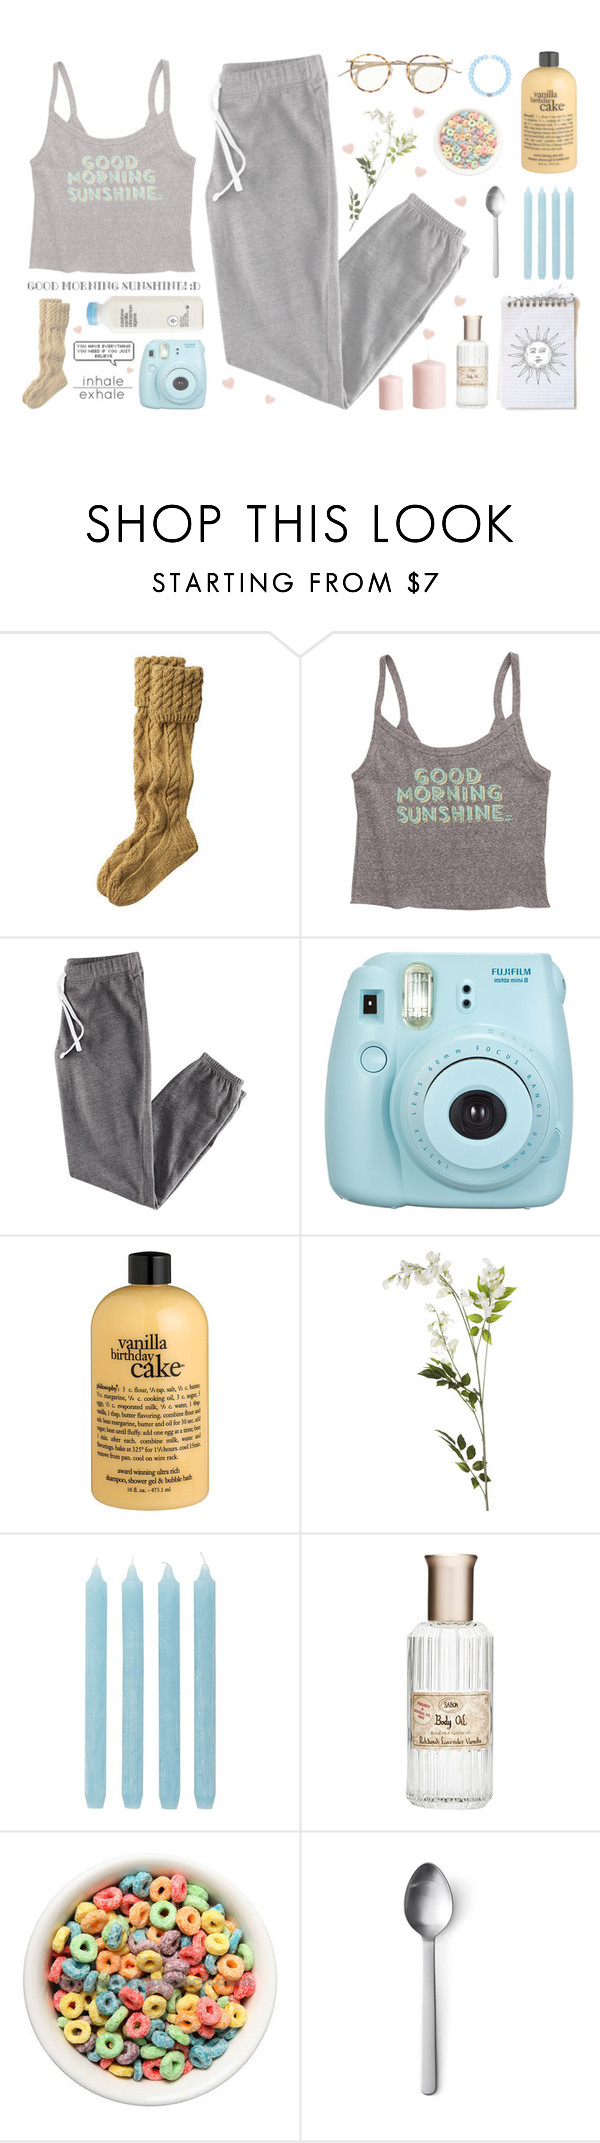 """""""Good Morning Sunshine"""" by franchesca-29 ❤ liked on Polyvore featuring Toast, Billabong, H&M, philosophy, OKA, Pier 1 Imports and Menu"""